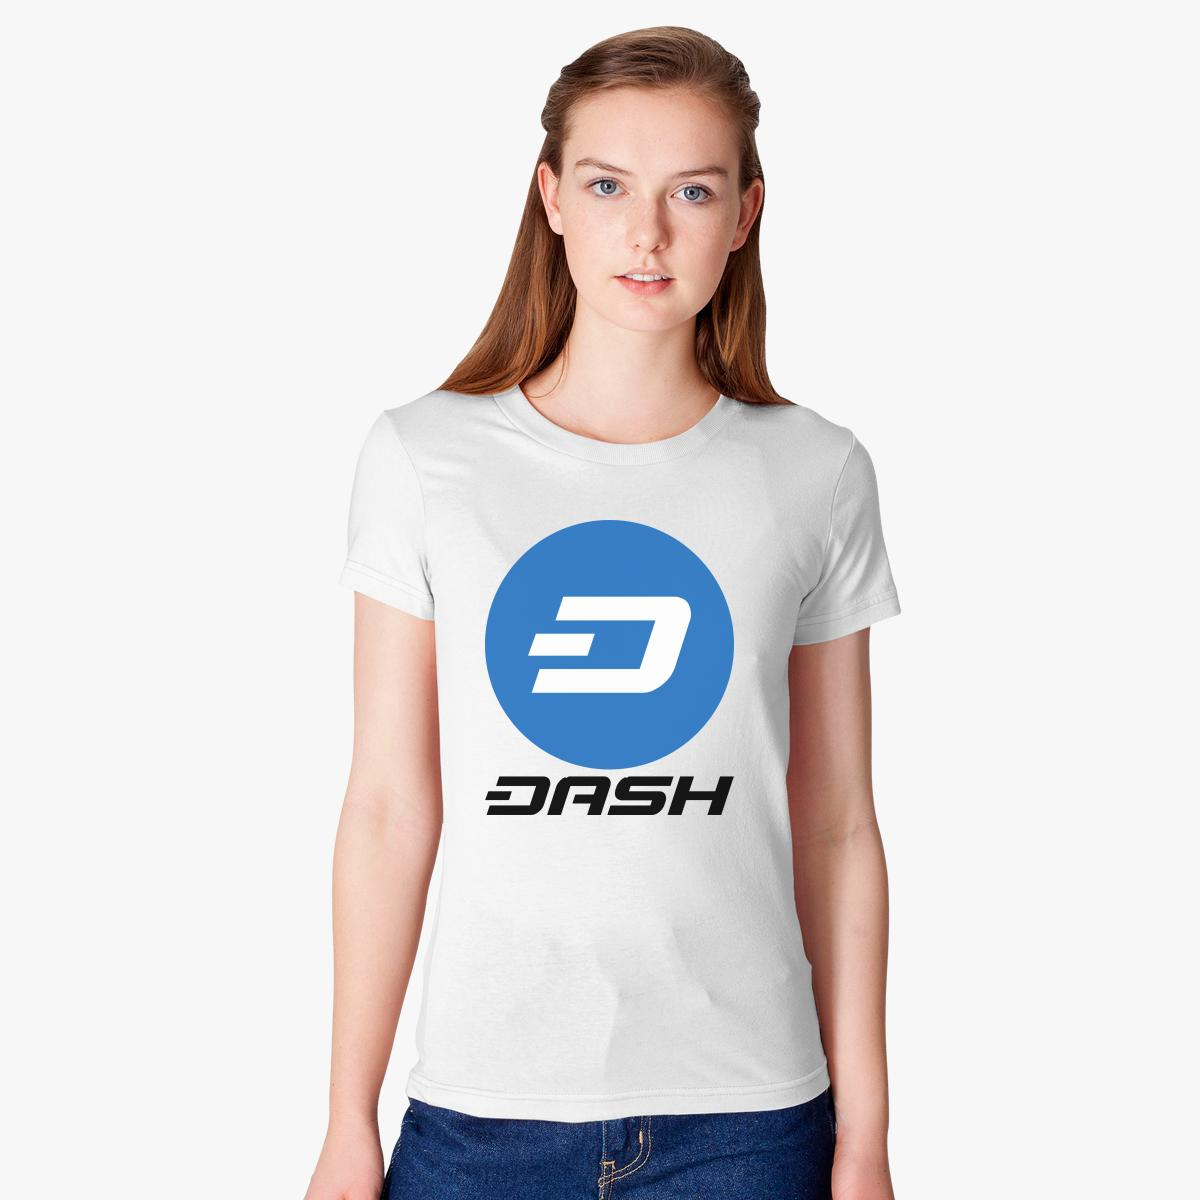 Cryptocurrency Clothing What Is Dash Crypto